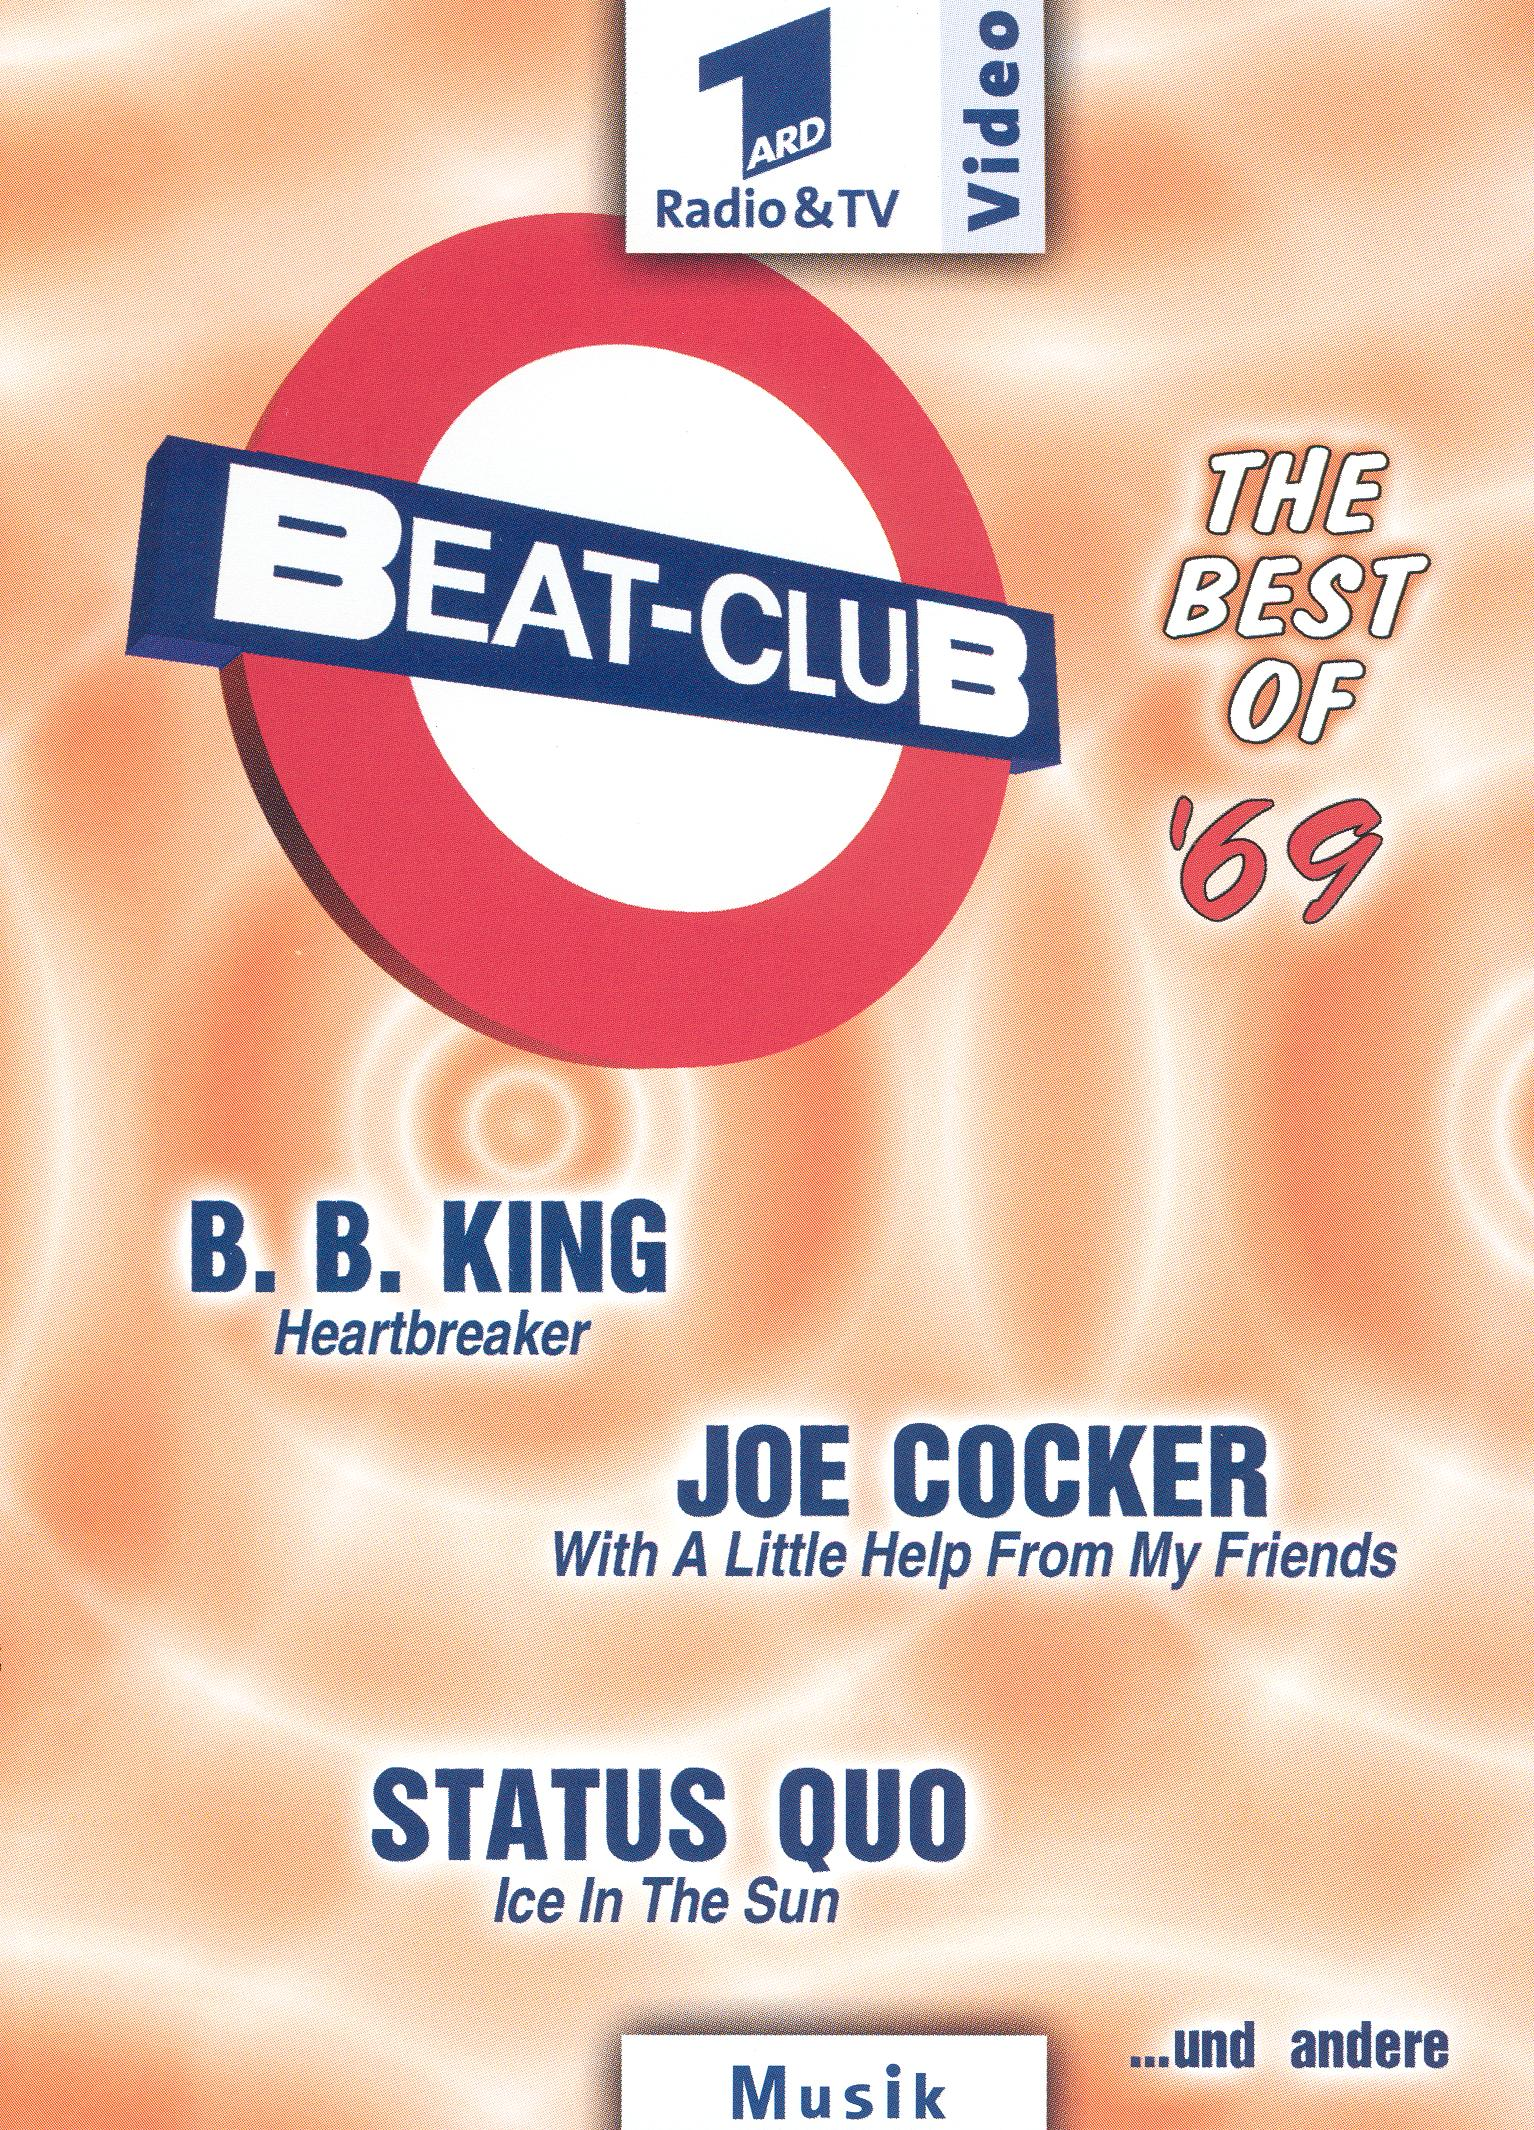 The Beat-Club: The Best of '69